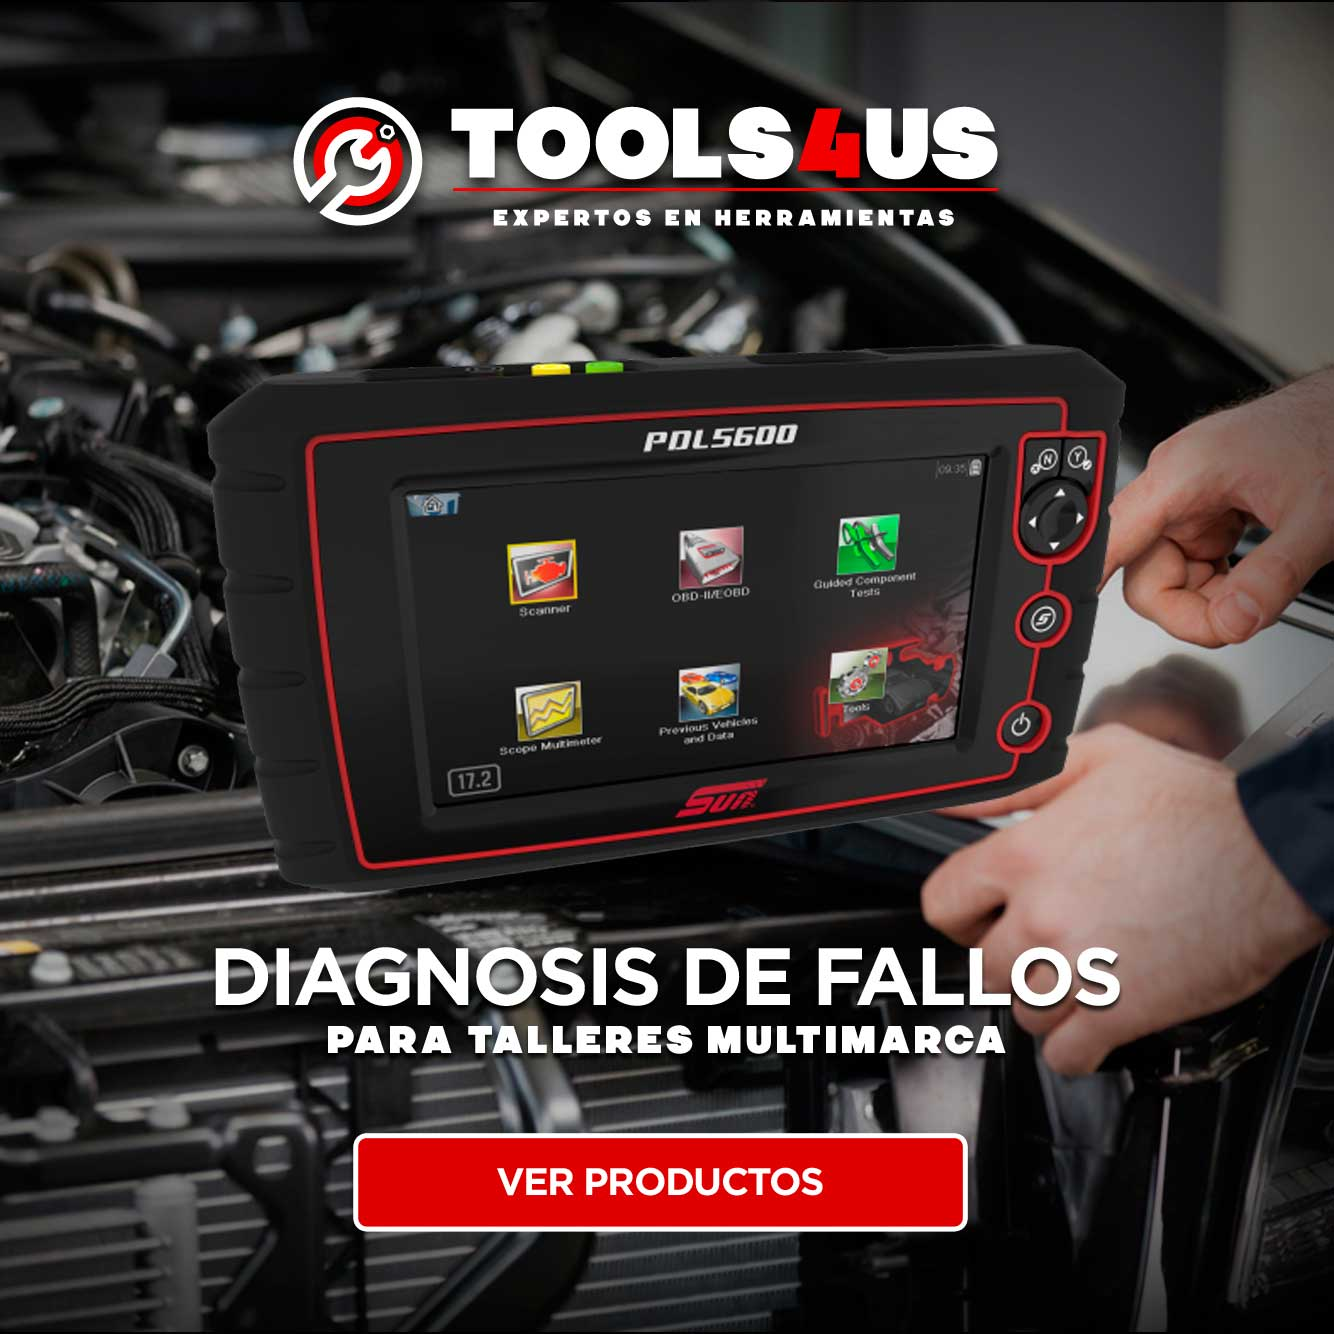 promos modulos diagnosis sun snap on diagnosico fallos coches autos taller multimarca automocion vag psa